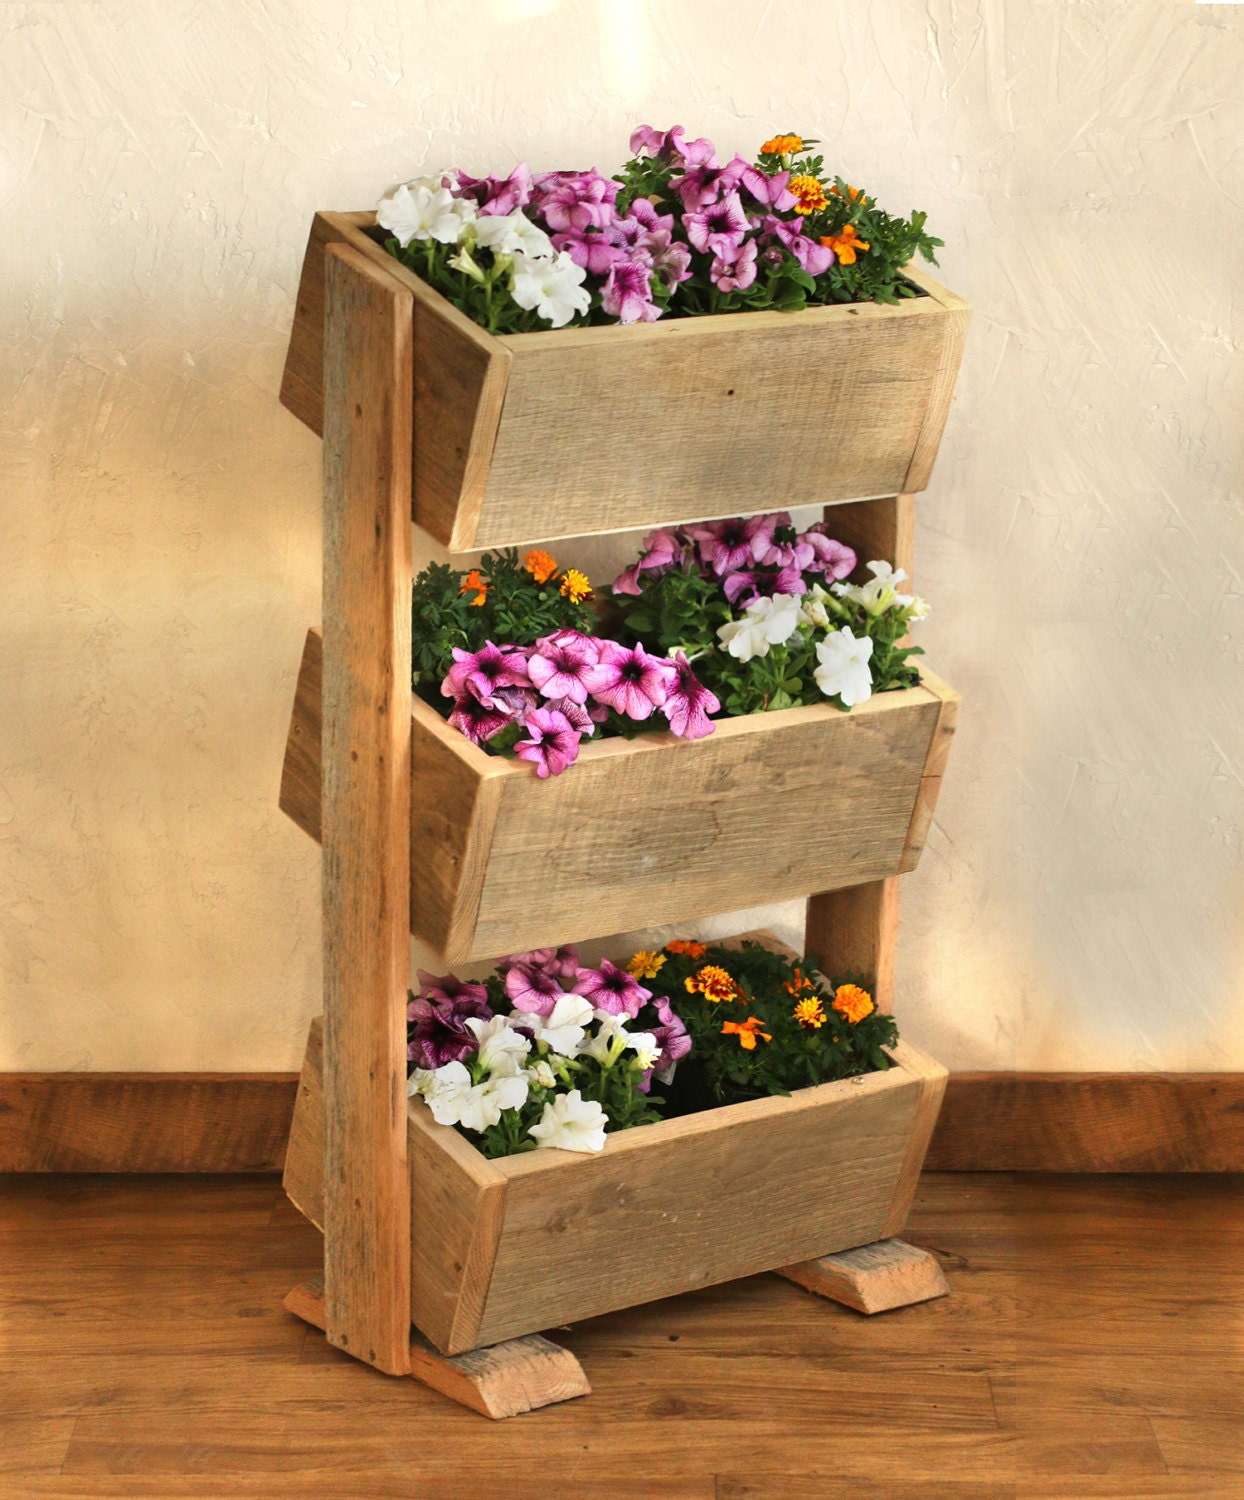 Diy Stacked Herb Garden: Vertical Planter Boxes Reclaimed Wood Stacked By